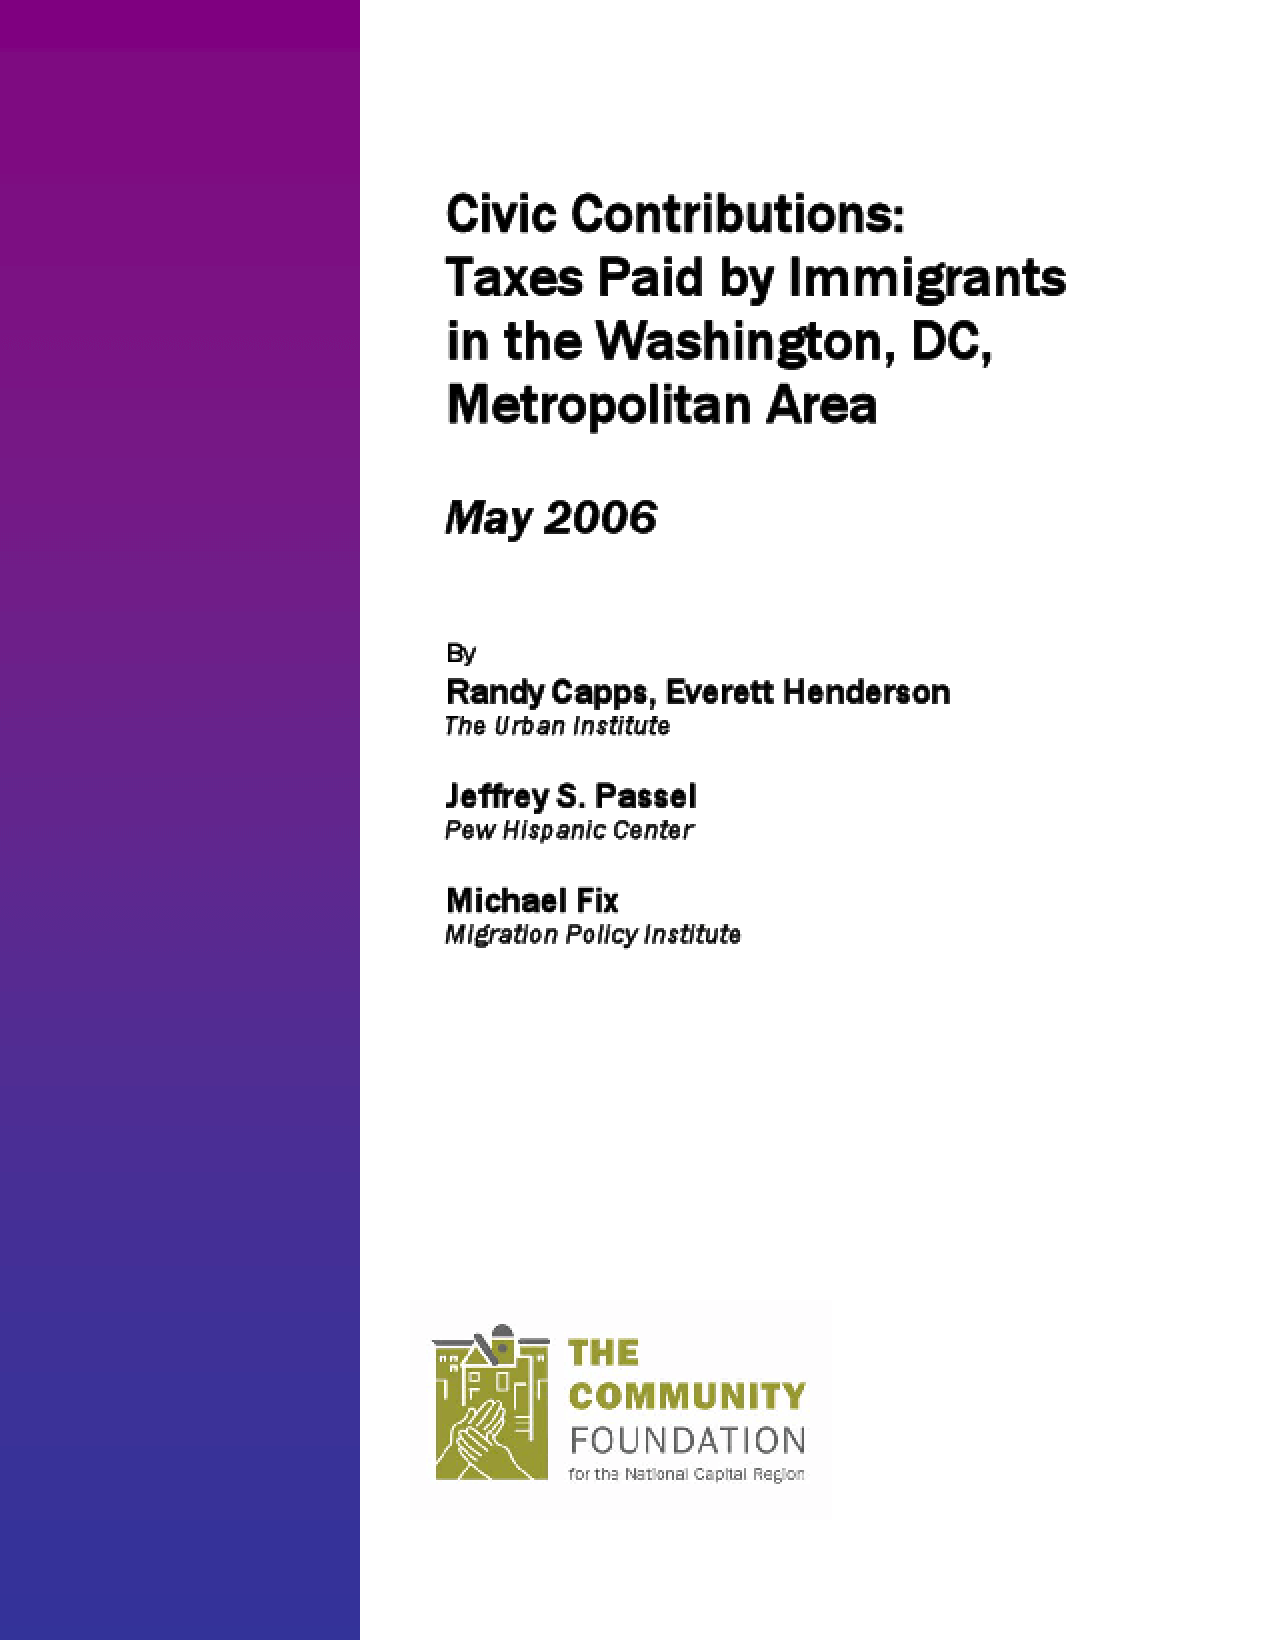 Civic Contributions: Taxes Paid by Immigrants in the Washington, DC, Metropolitan Area